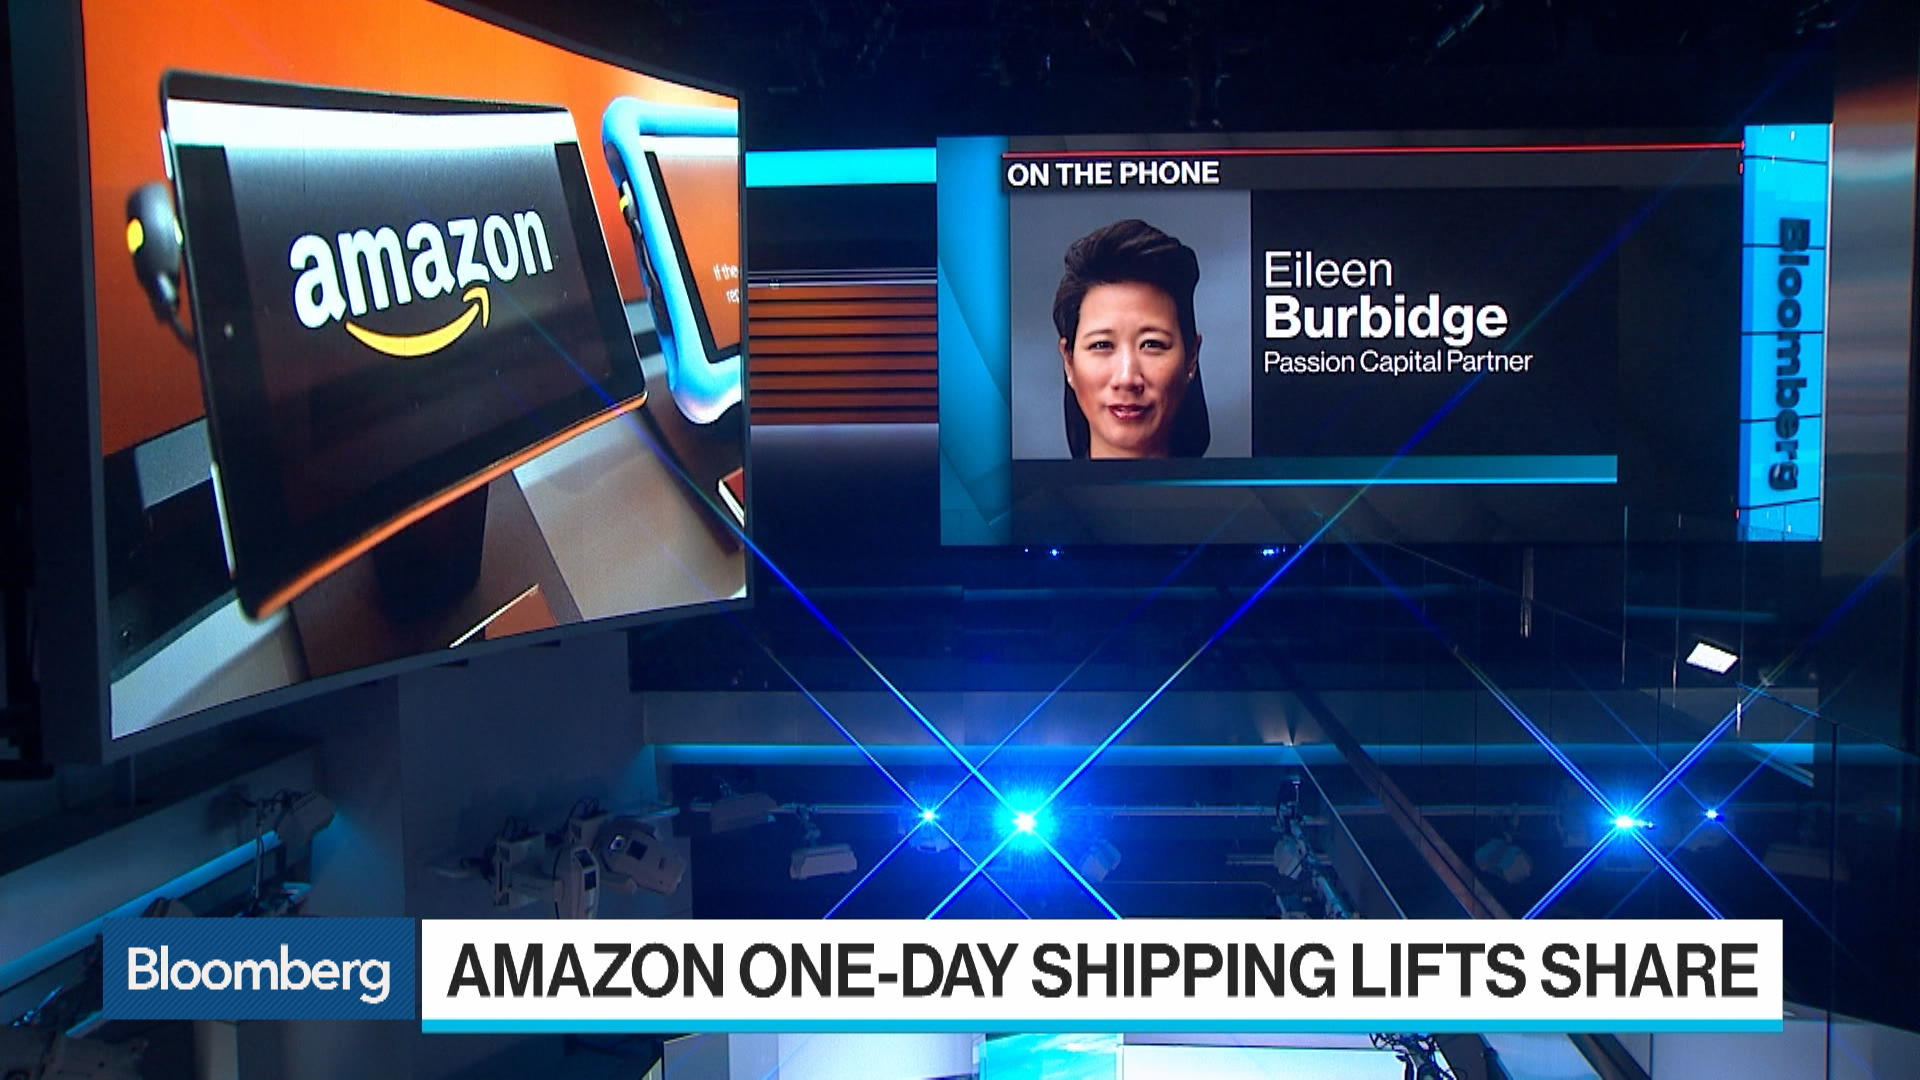 Amazon's Profitability Is Now Its Biggest Weapon, Passion Capital Says